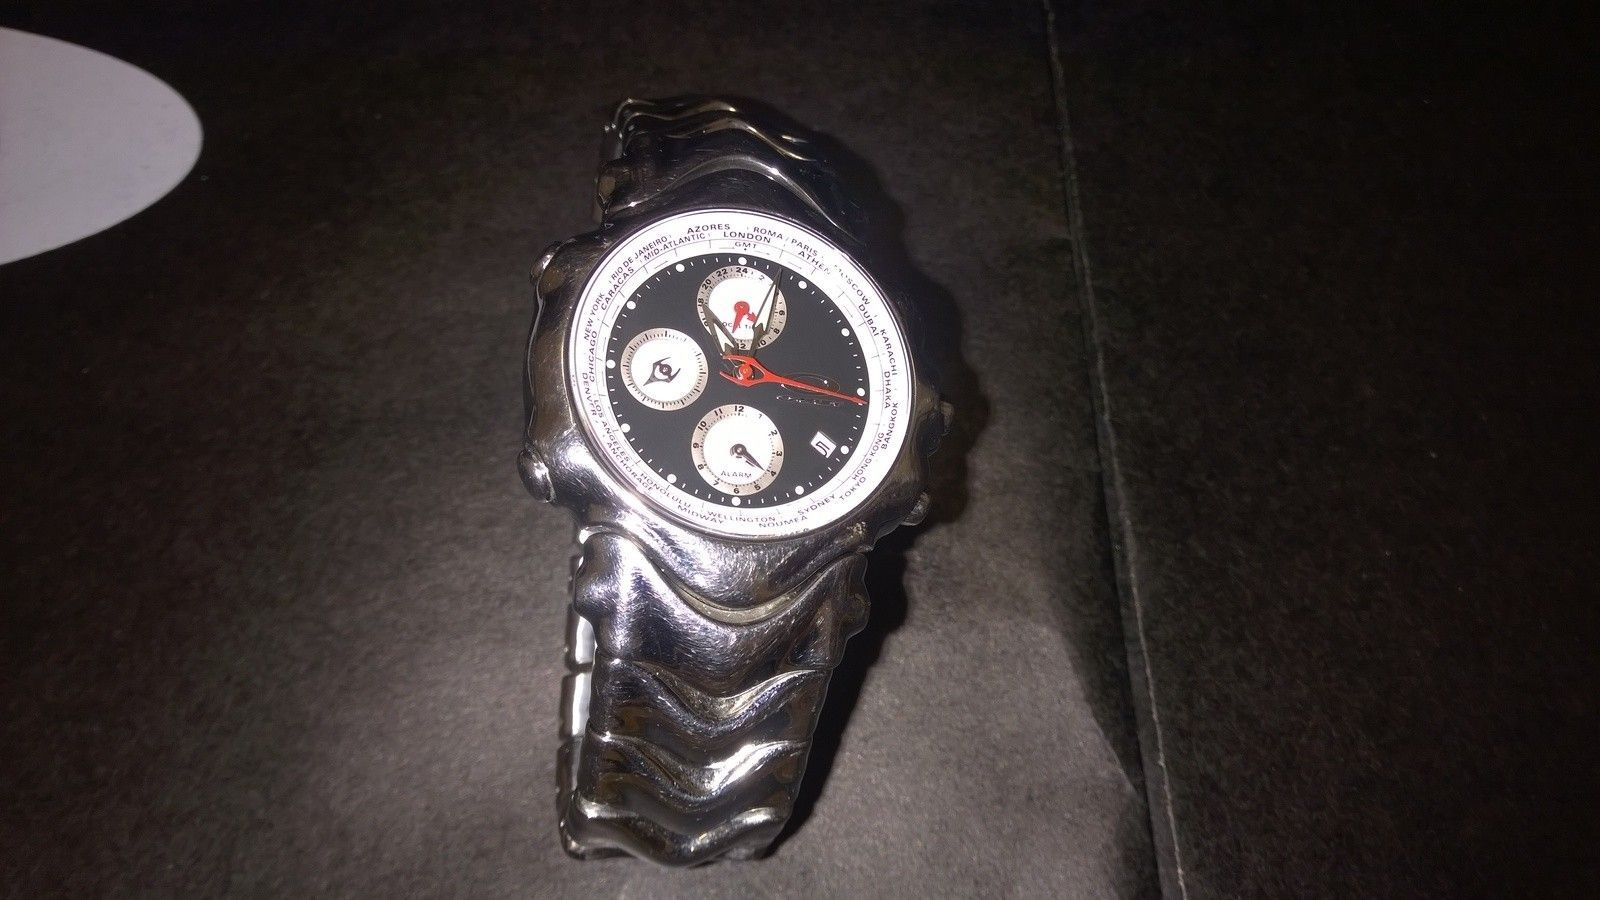 HQ Bunker $235 / Polished GMT Watch $230 / Dog Tag Bottle Openers $60 - WP_20150211_22_53_04_Pro.jpg